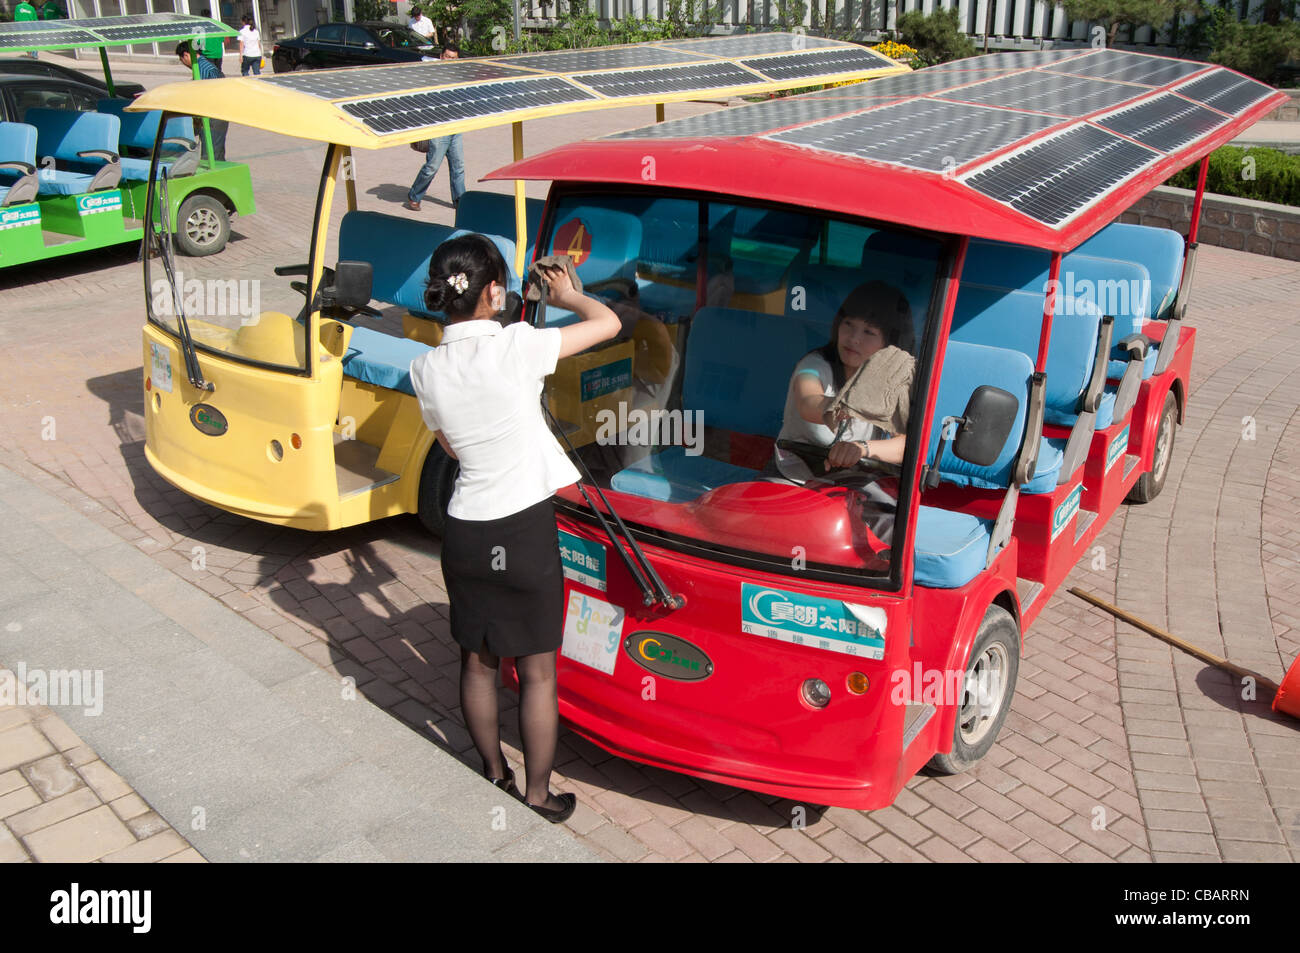 Two hostess set up a solar powered bus. China Solar Valley, Dezhou, Shandong, China - Stock Image